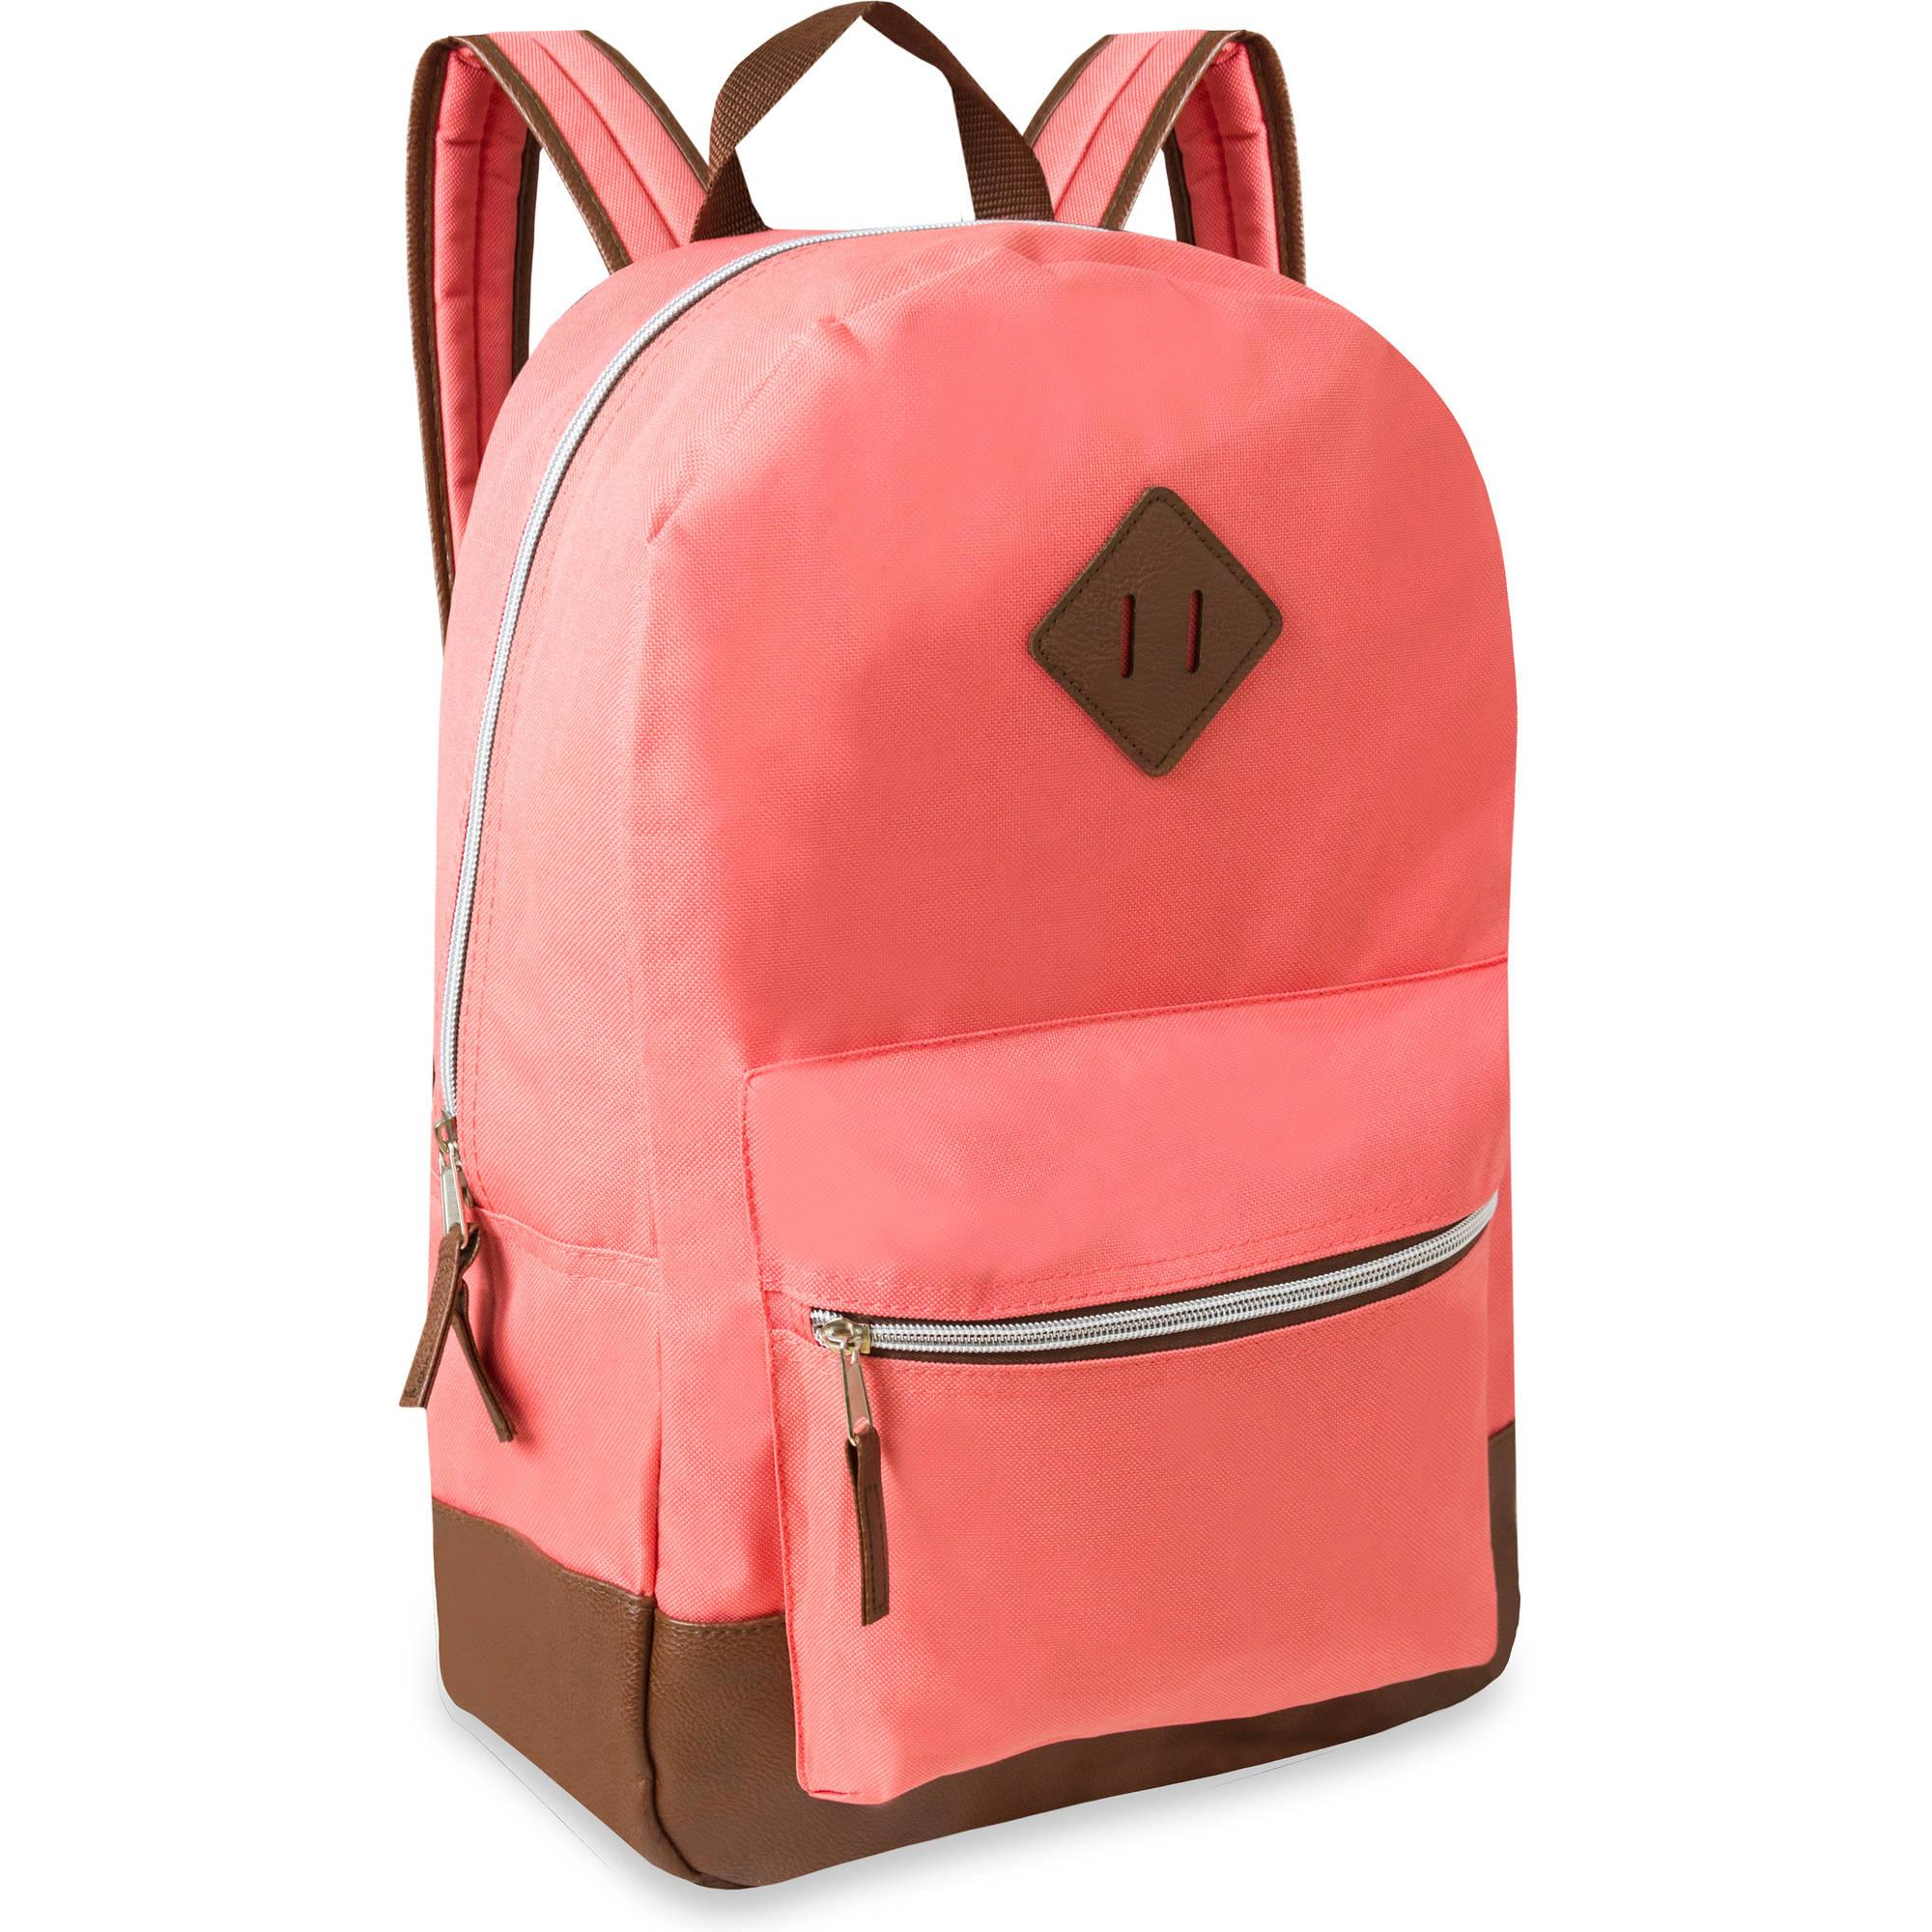 17.5'' Classic Backpack With Reinforced Vinyl Bottom and ...